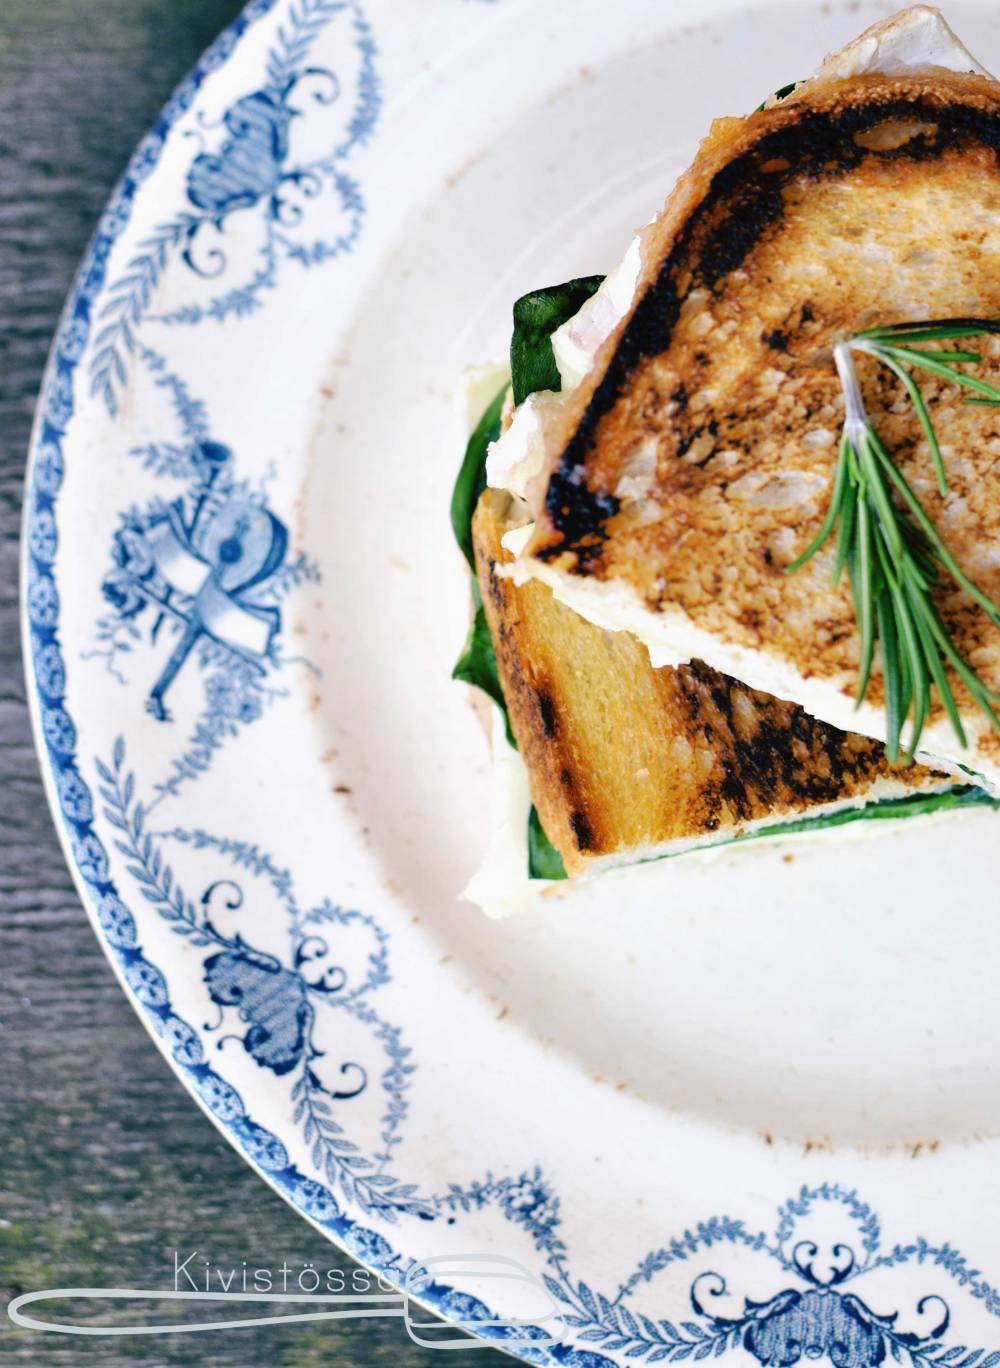 Grilled Cheese with Pear Jam, Rosemary and Brie - Kivistössä foodblog www.kivistossa.com